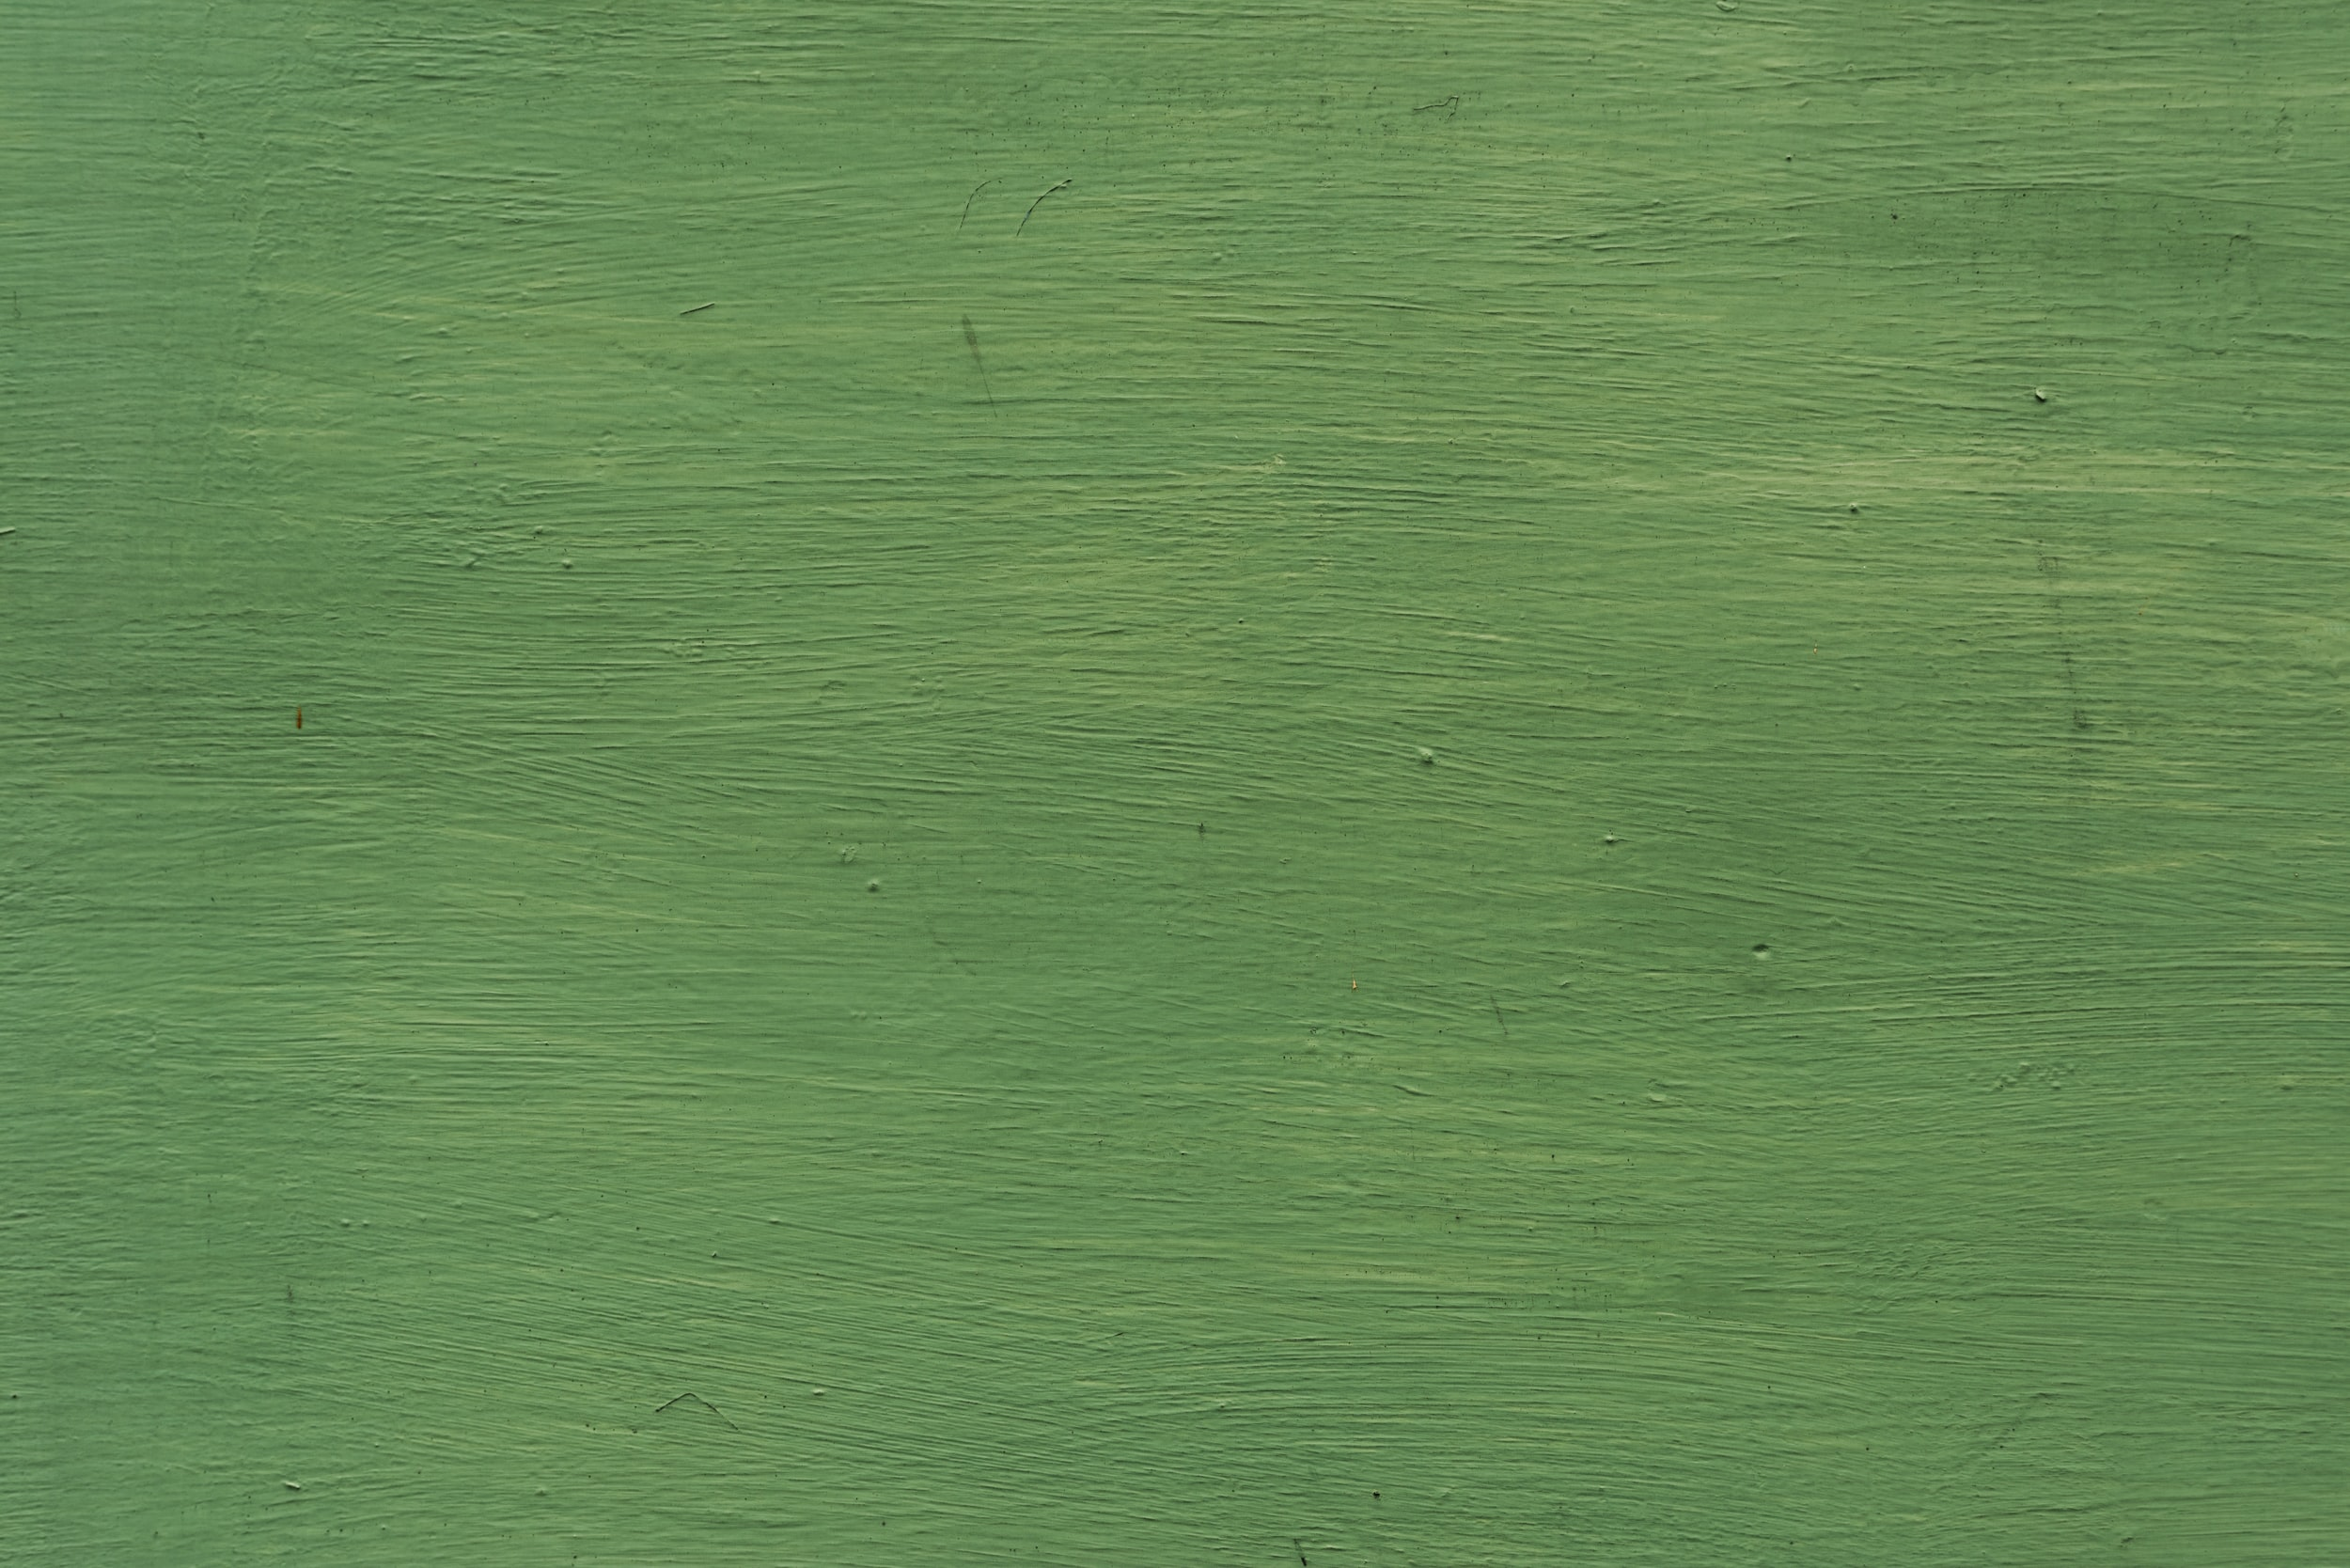 green painted surface